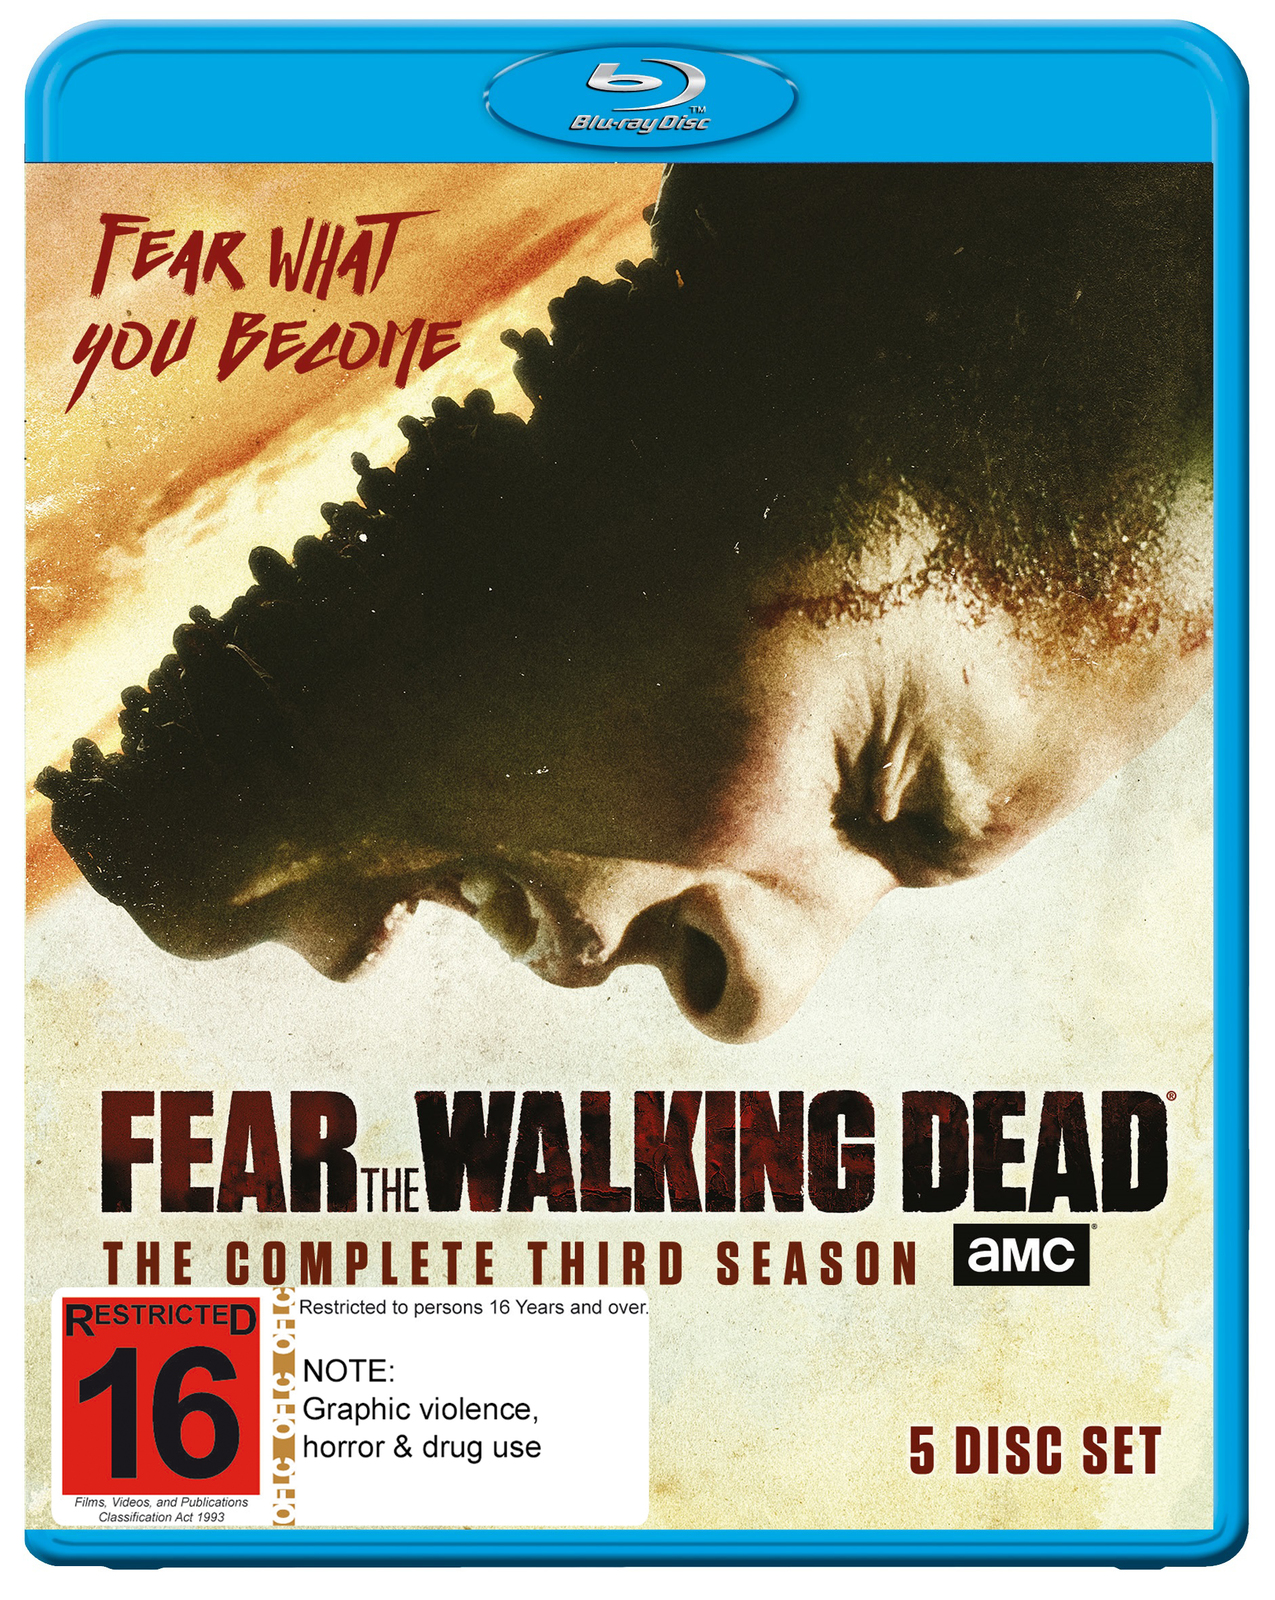 Fear The Walking Dead - The Complete Third Season on Blu-ray image